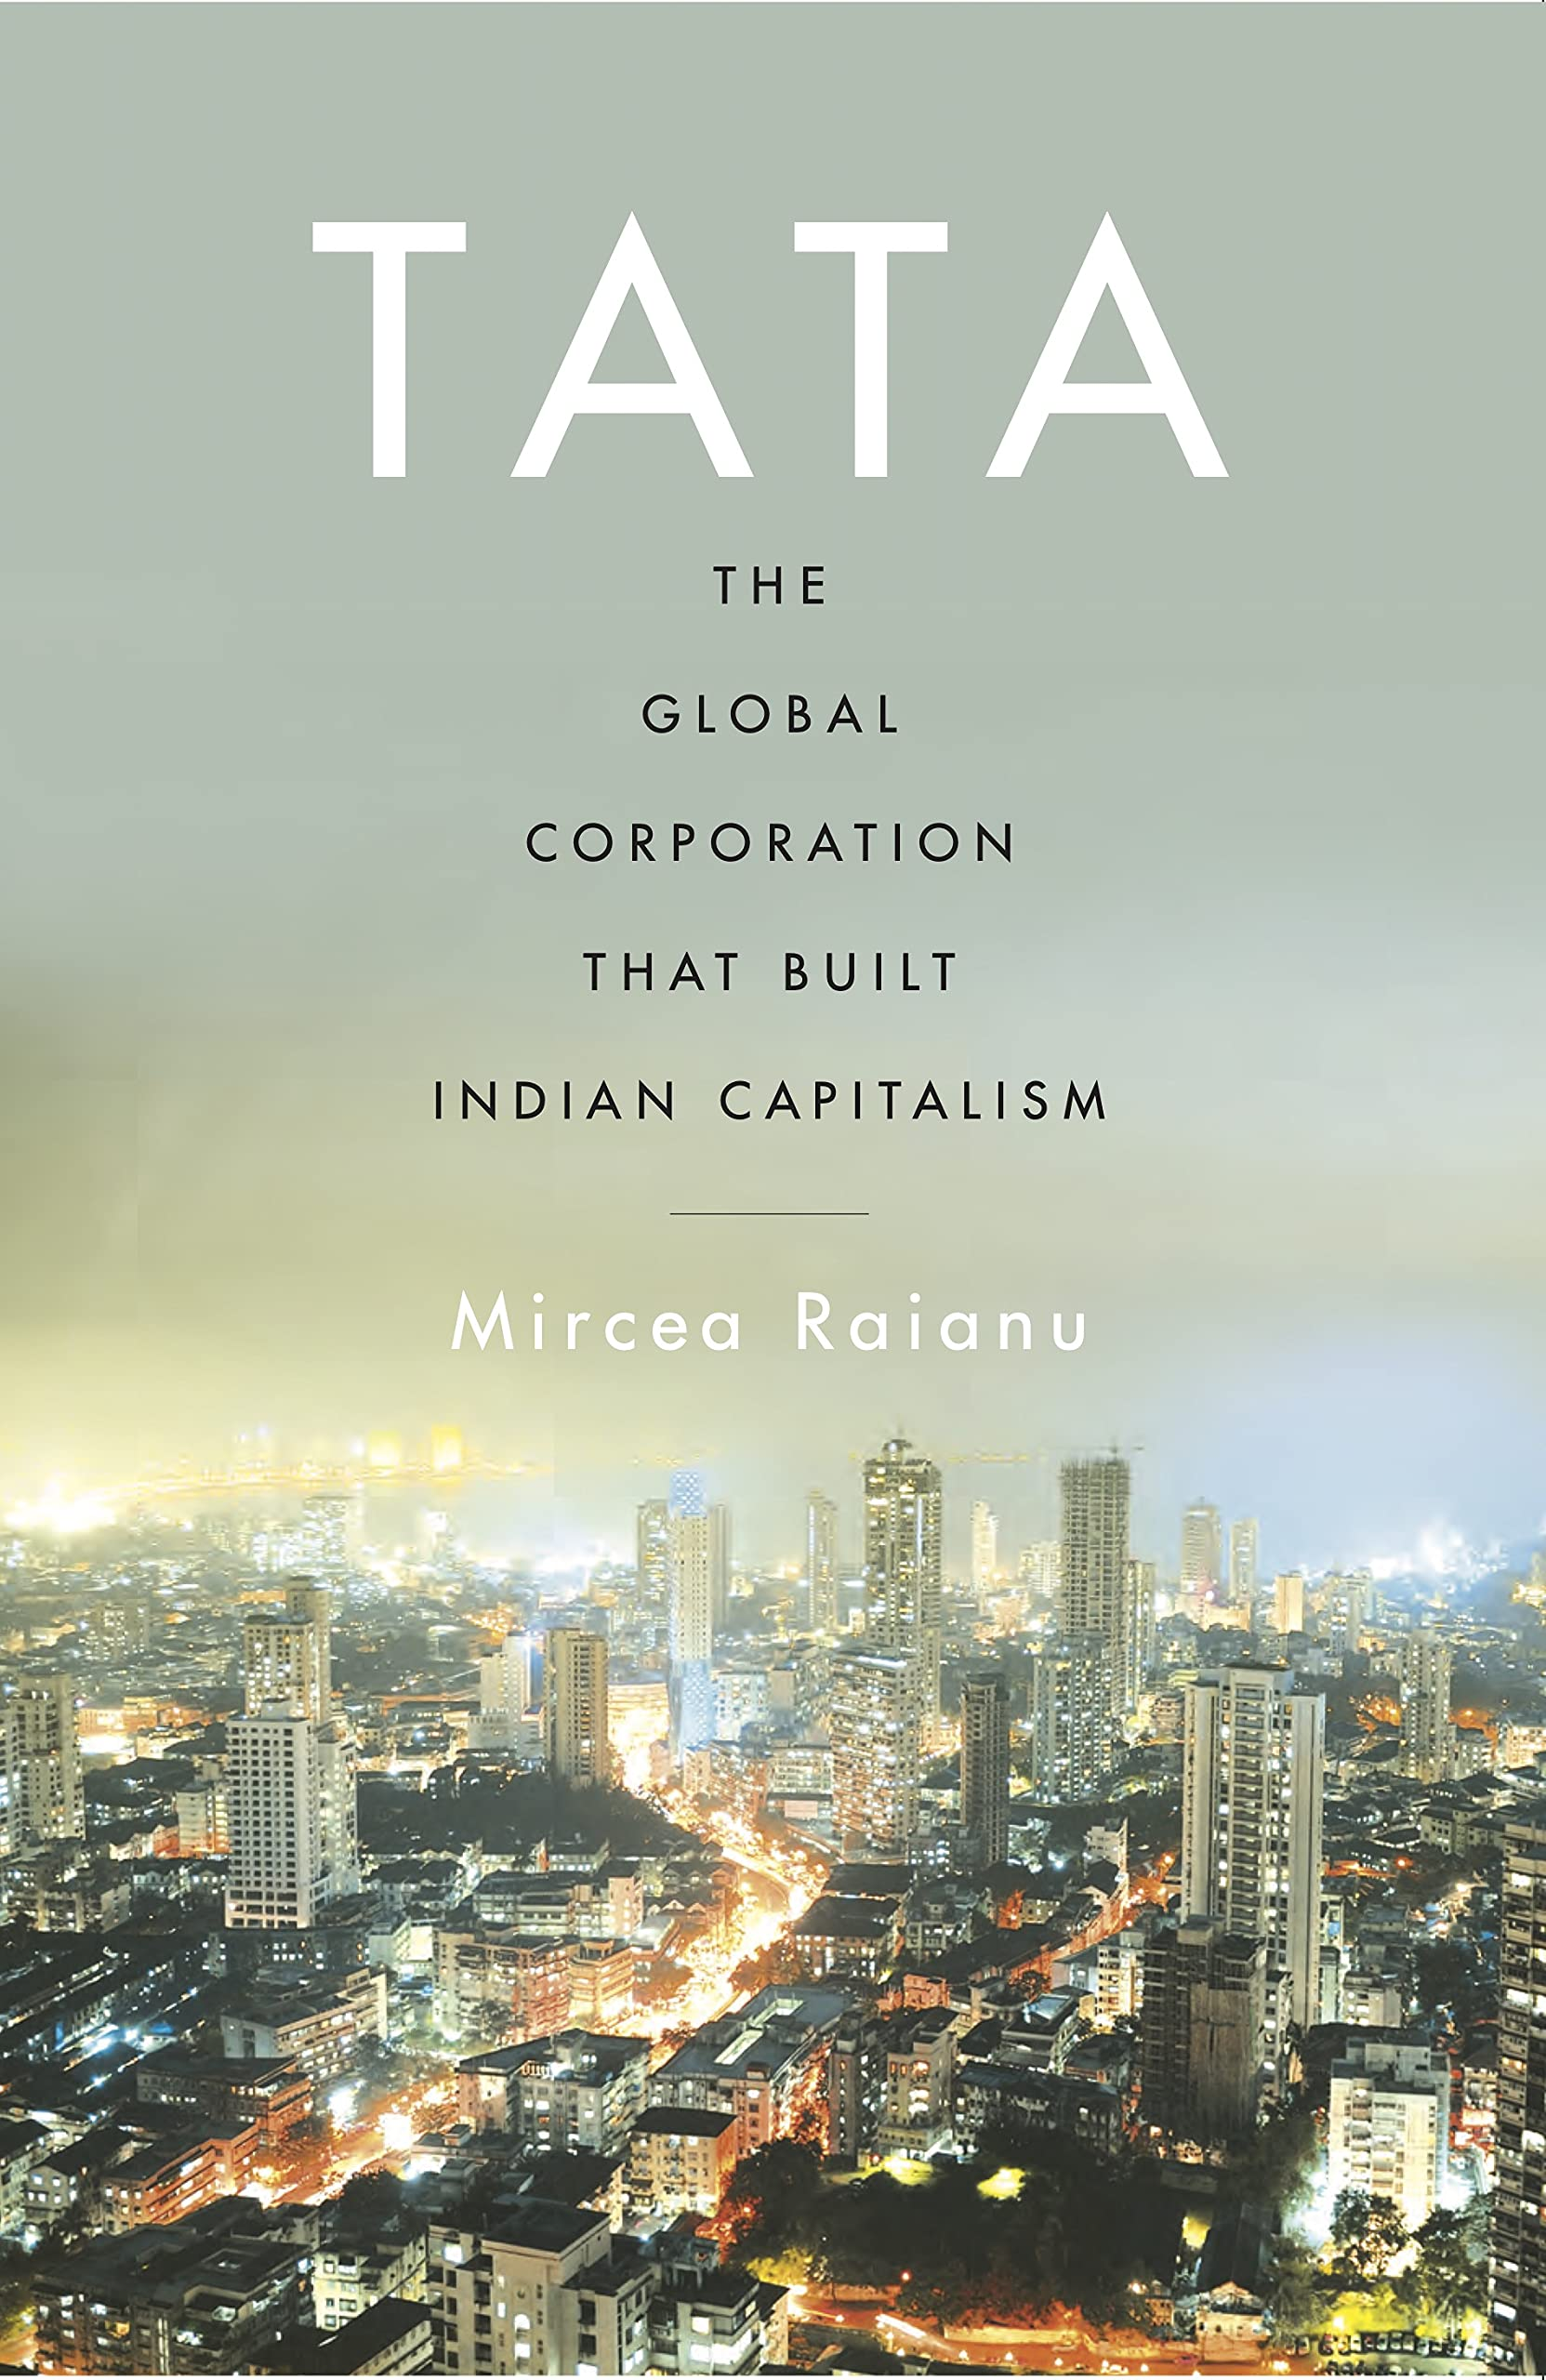 Tata : The Global Corporation That Built Indian Capitalism